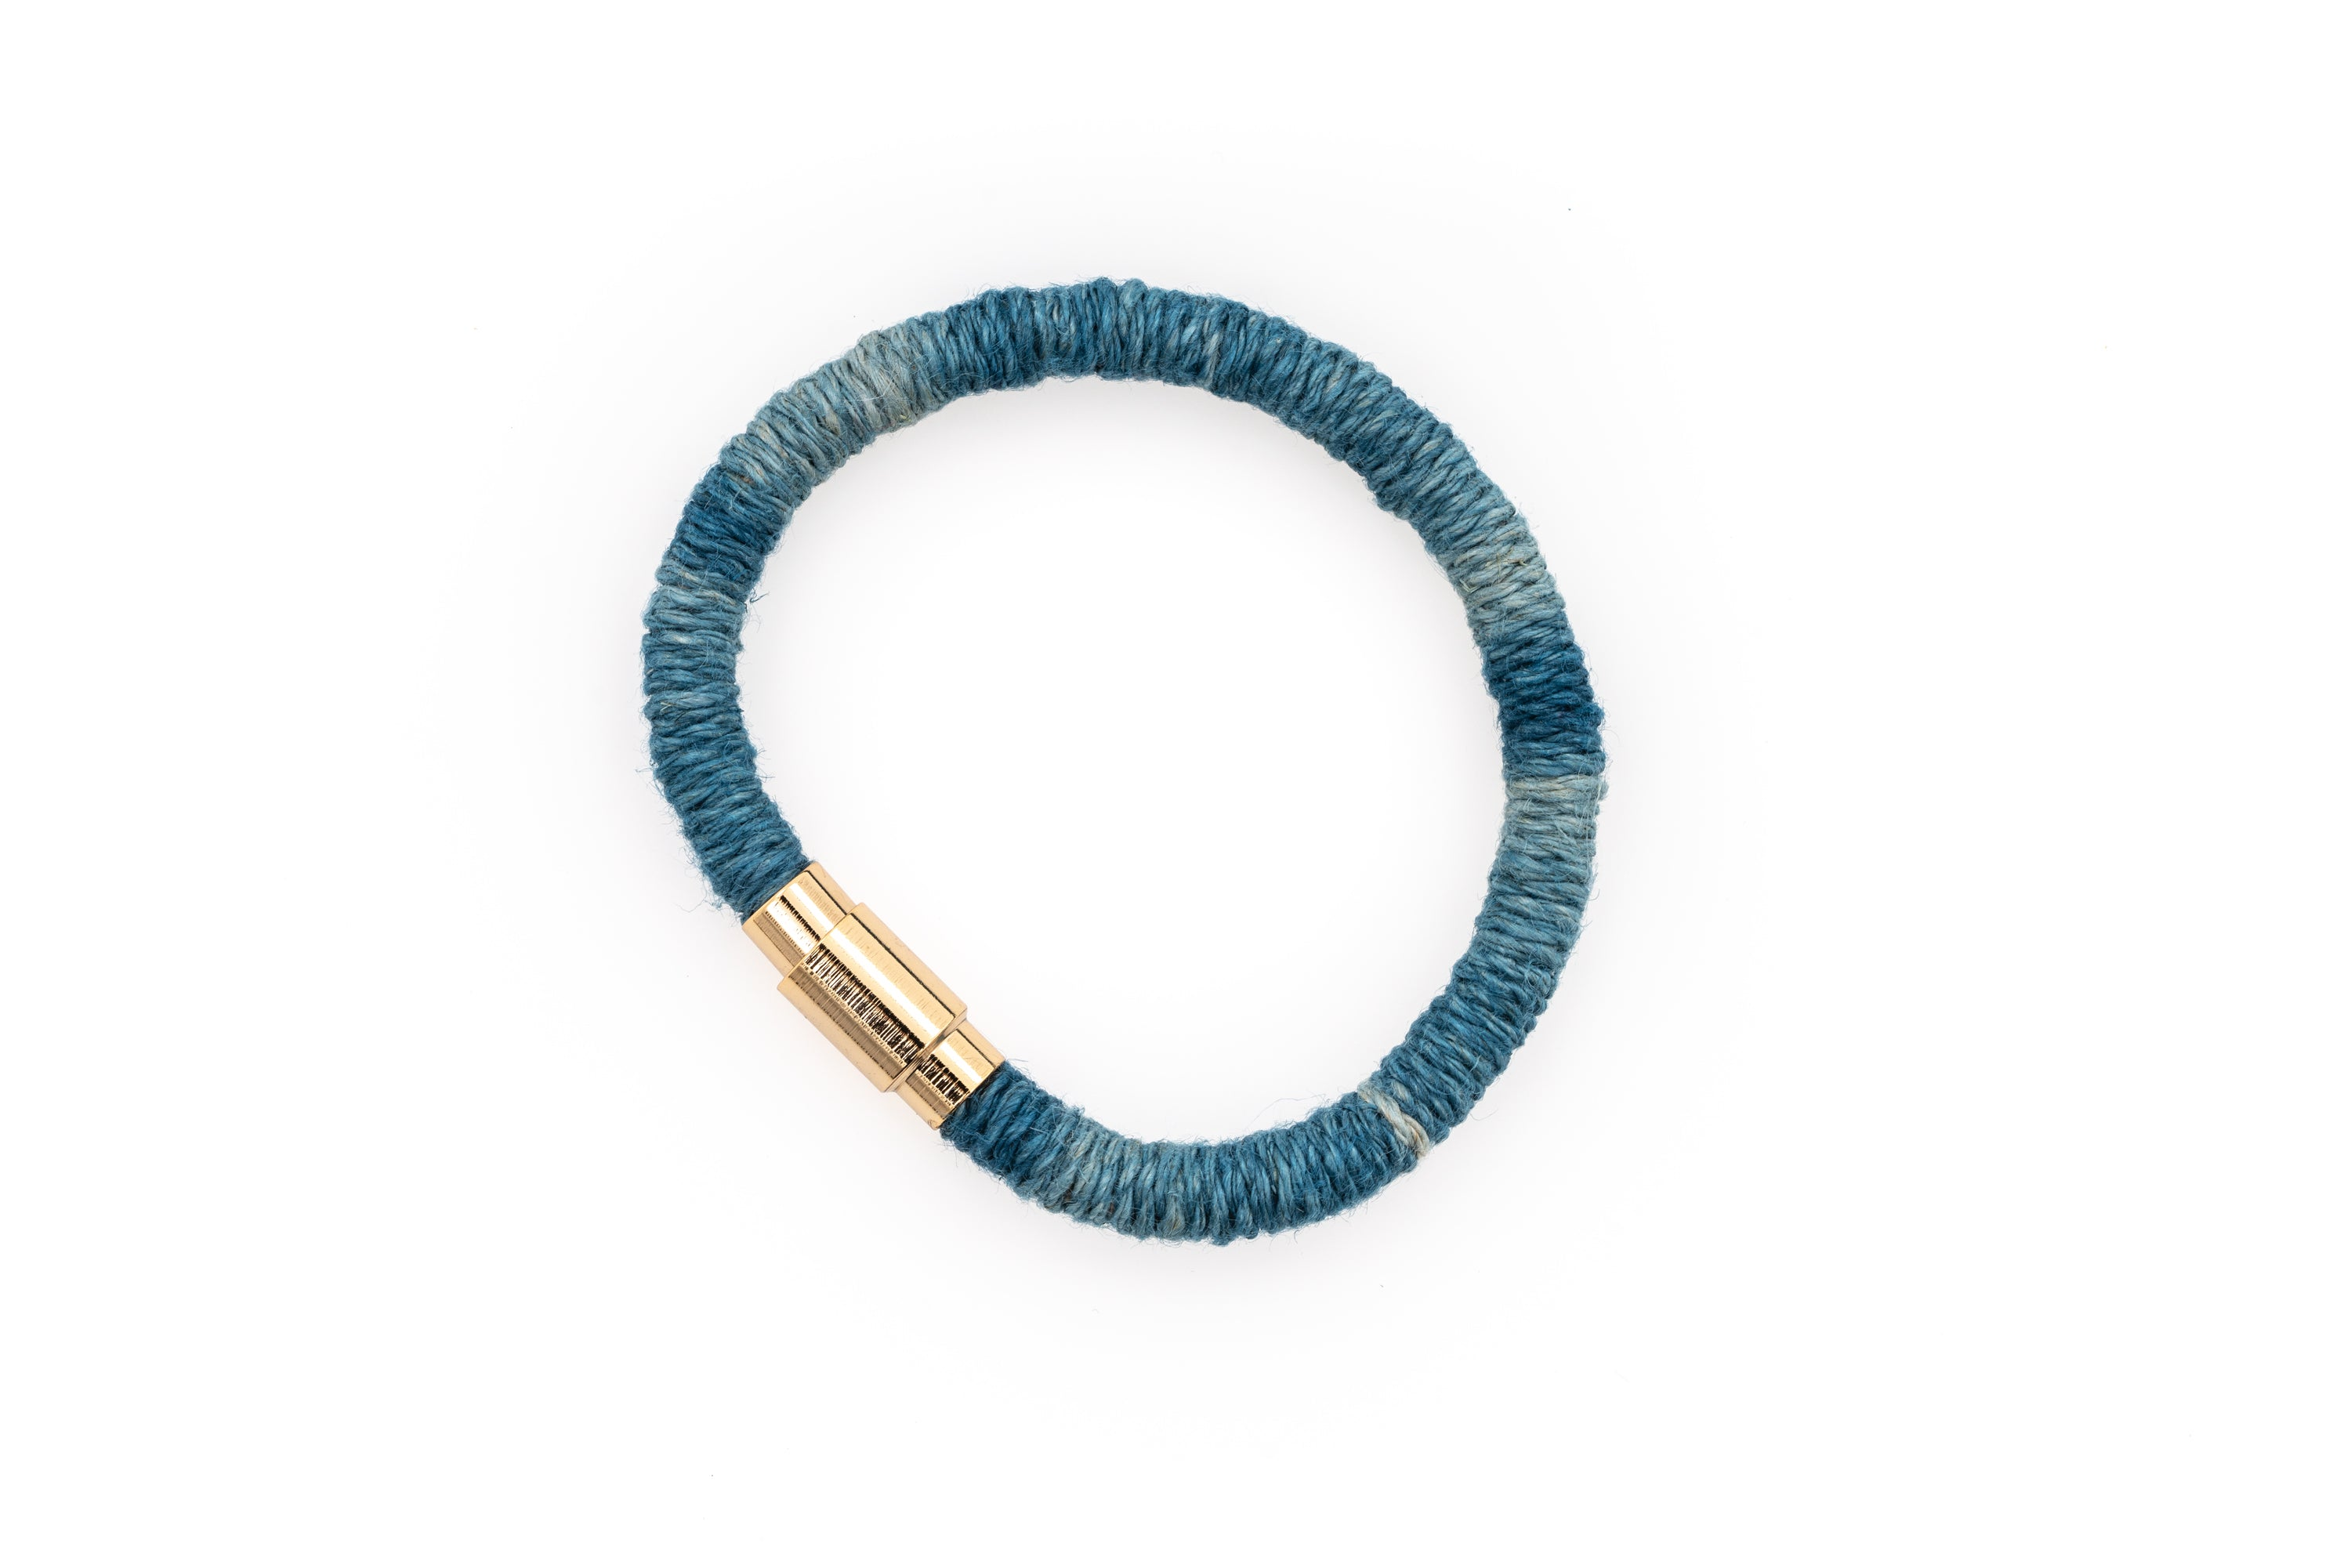 Fiber Art Jewelry Hemp Wrapped Bracelet Size S - Darker Blue / Gold Plated Magnet